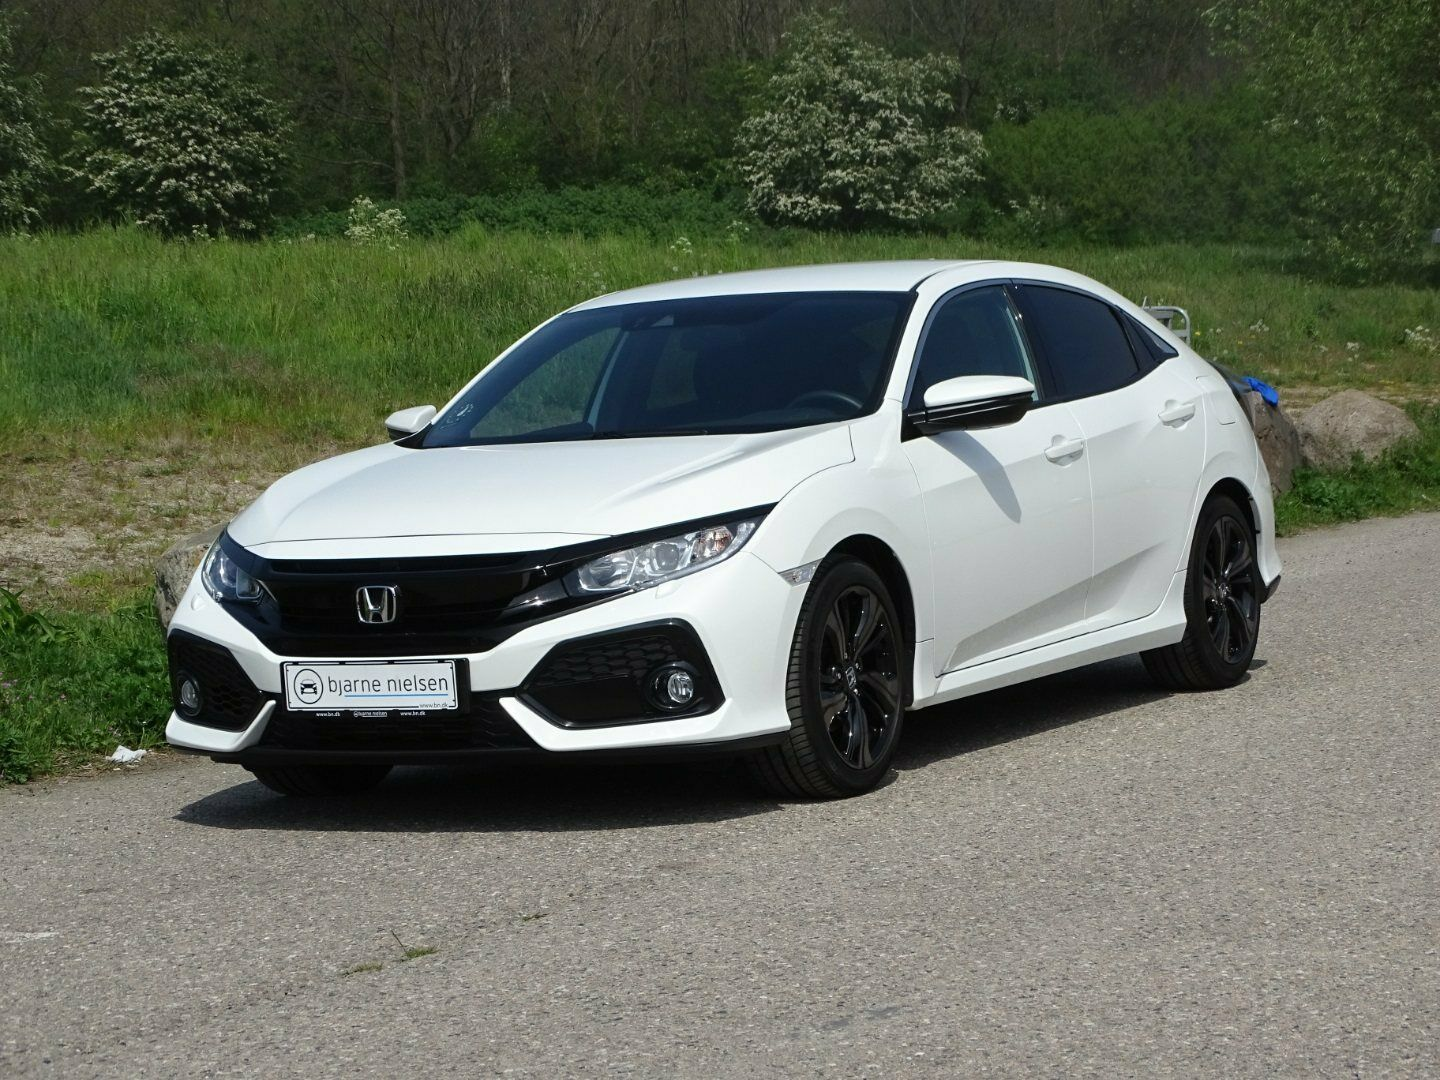 Honda Civic 1,0 VTEC Turbo Elegance CVT